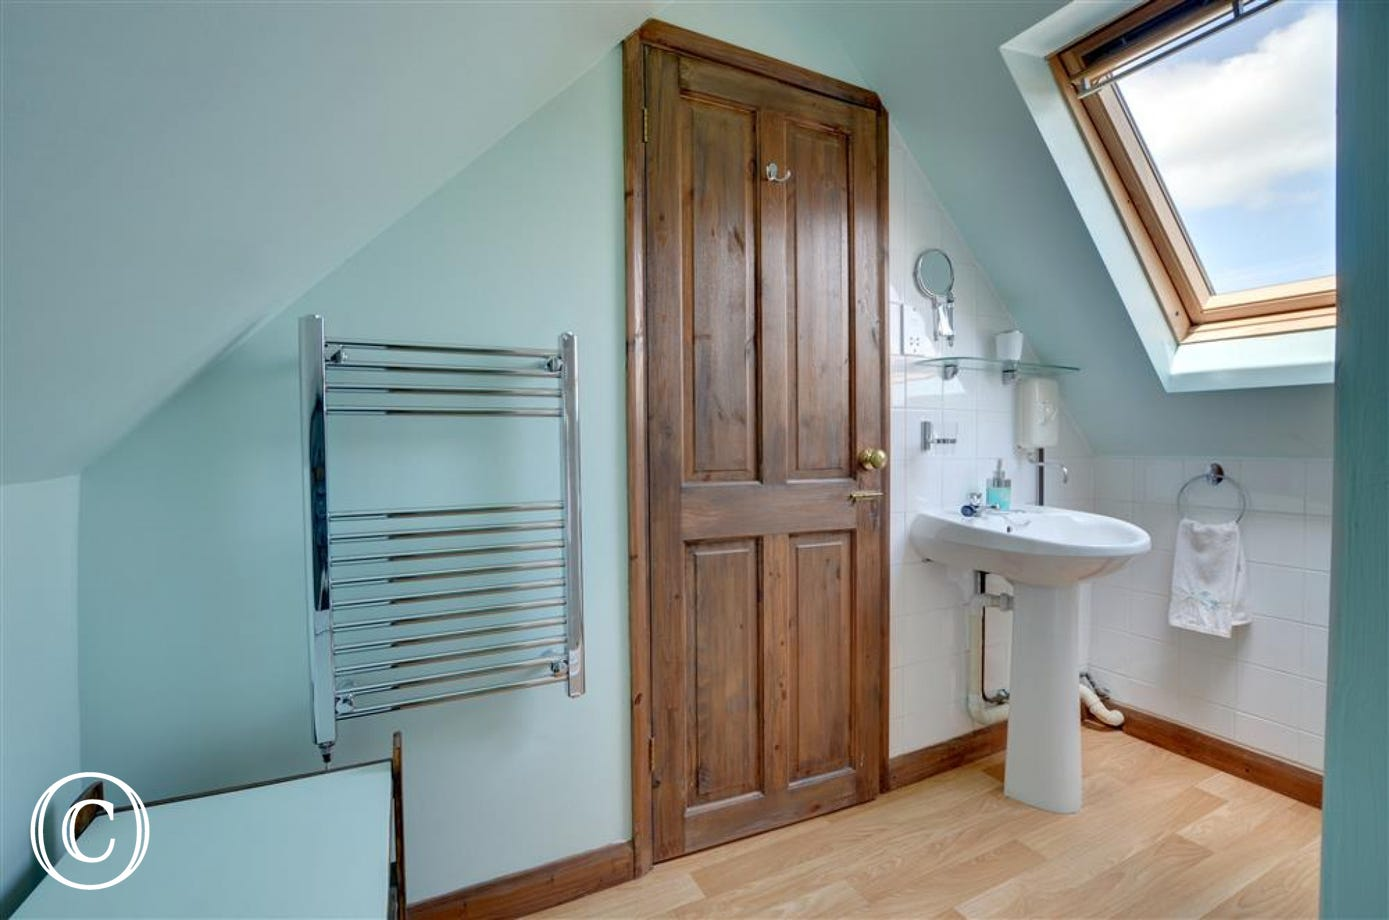 Shower room showing towel rail and hand basin